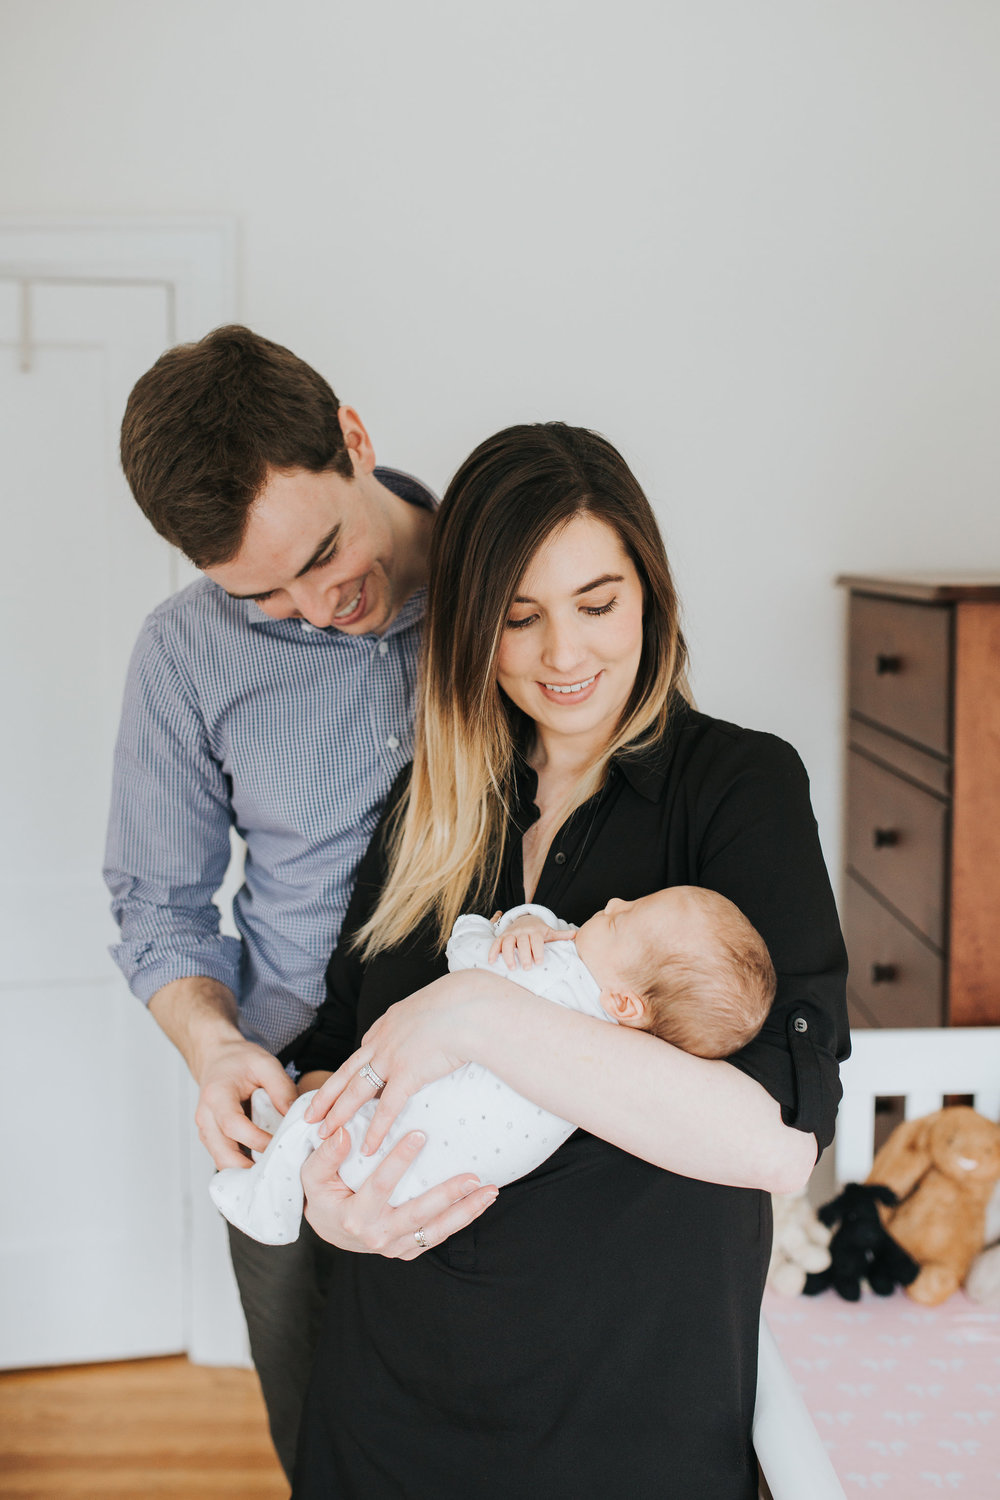 mom holds 4 week old baby girl in nursery, dad stands behind smiling at daughter - Markham Lifestyle Photography